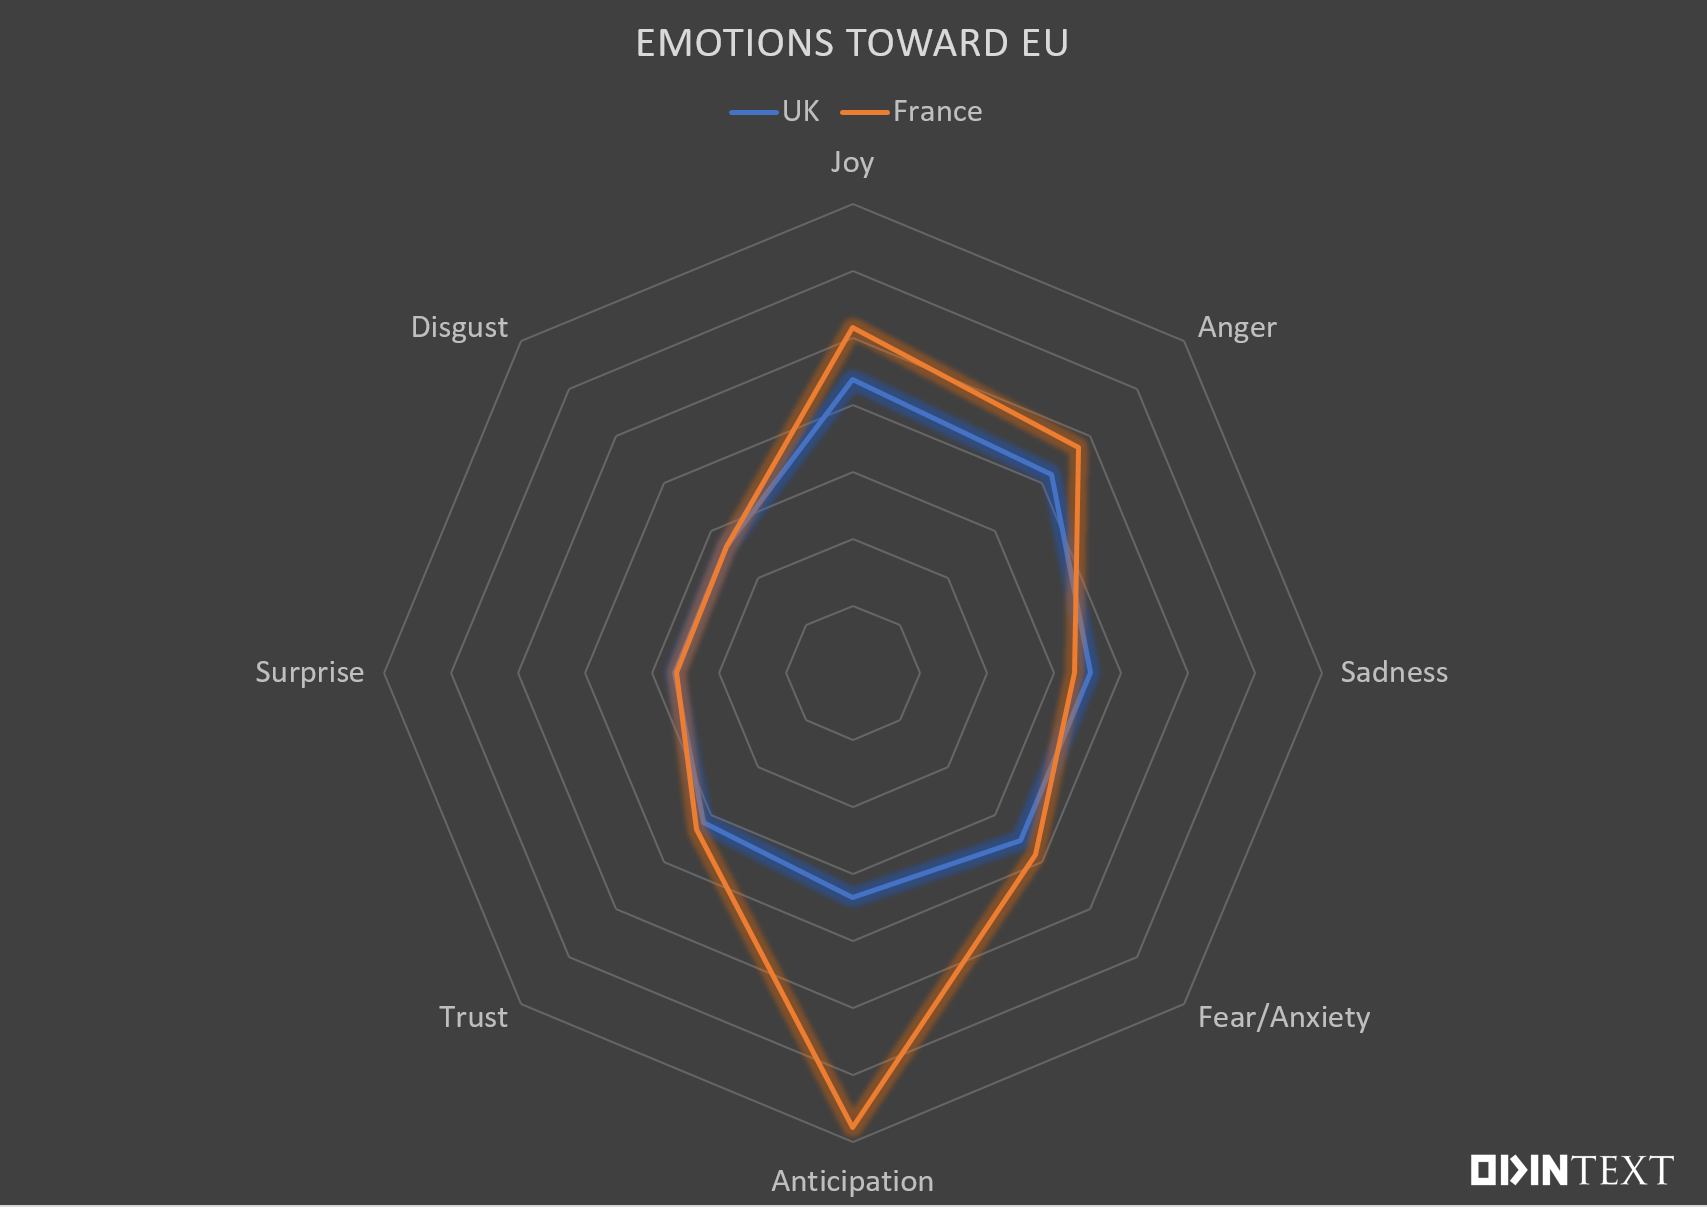 eMOTIONS TOWARD EU 2